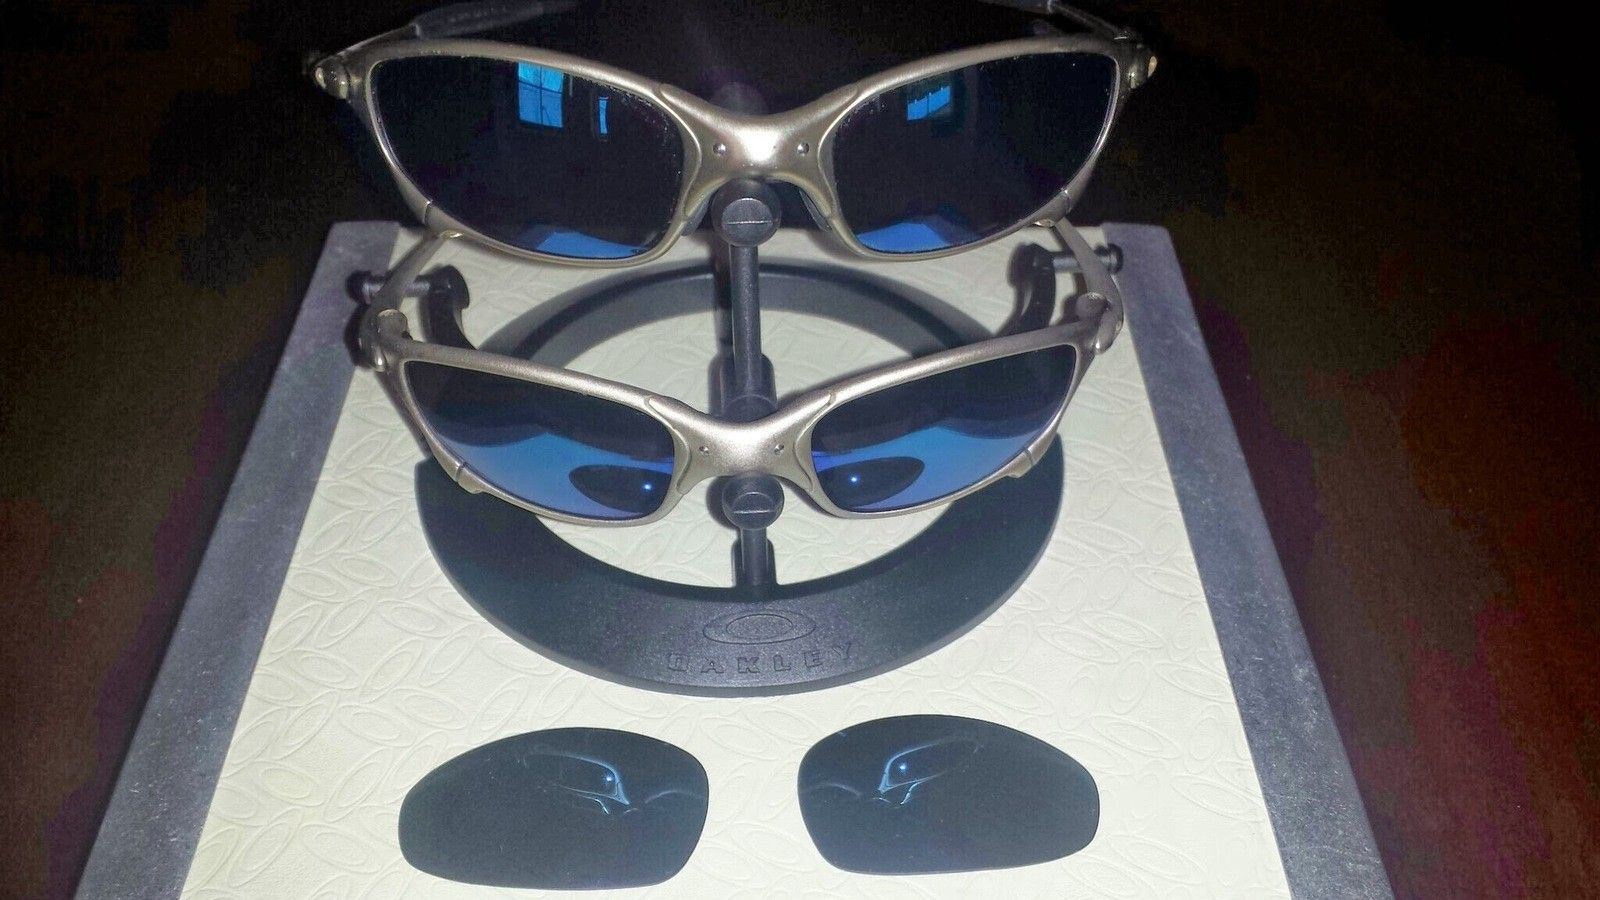 Two Pairs Of Plasma Ice Juliets + A Spare Pair Of Lenses - 20140402_184458.jpg